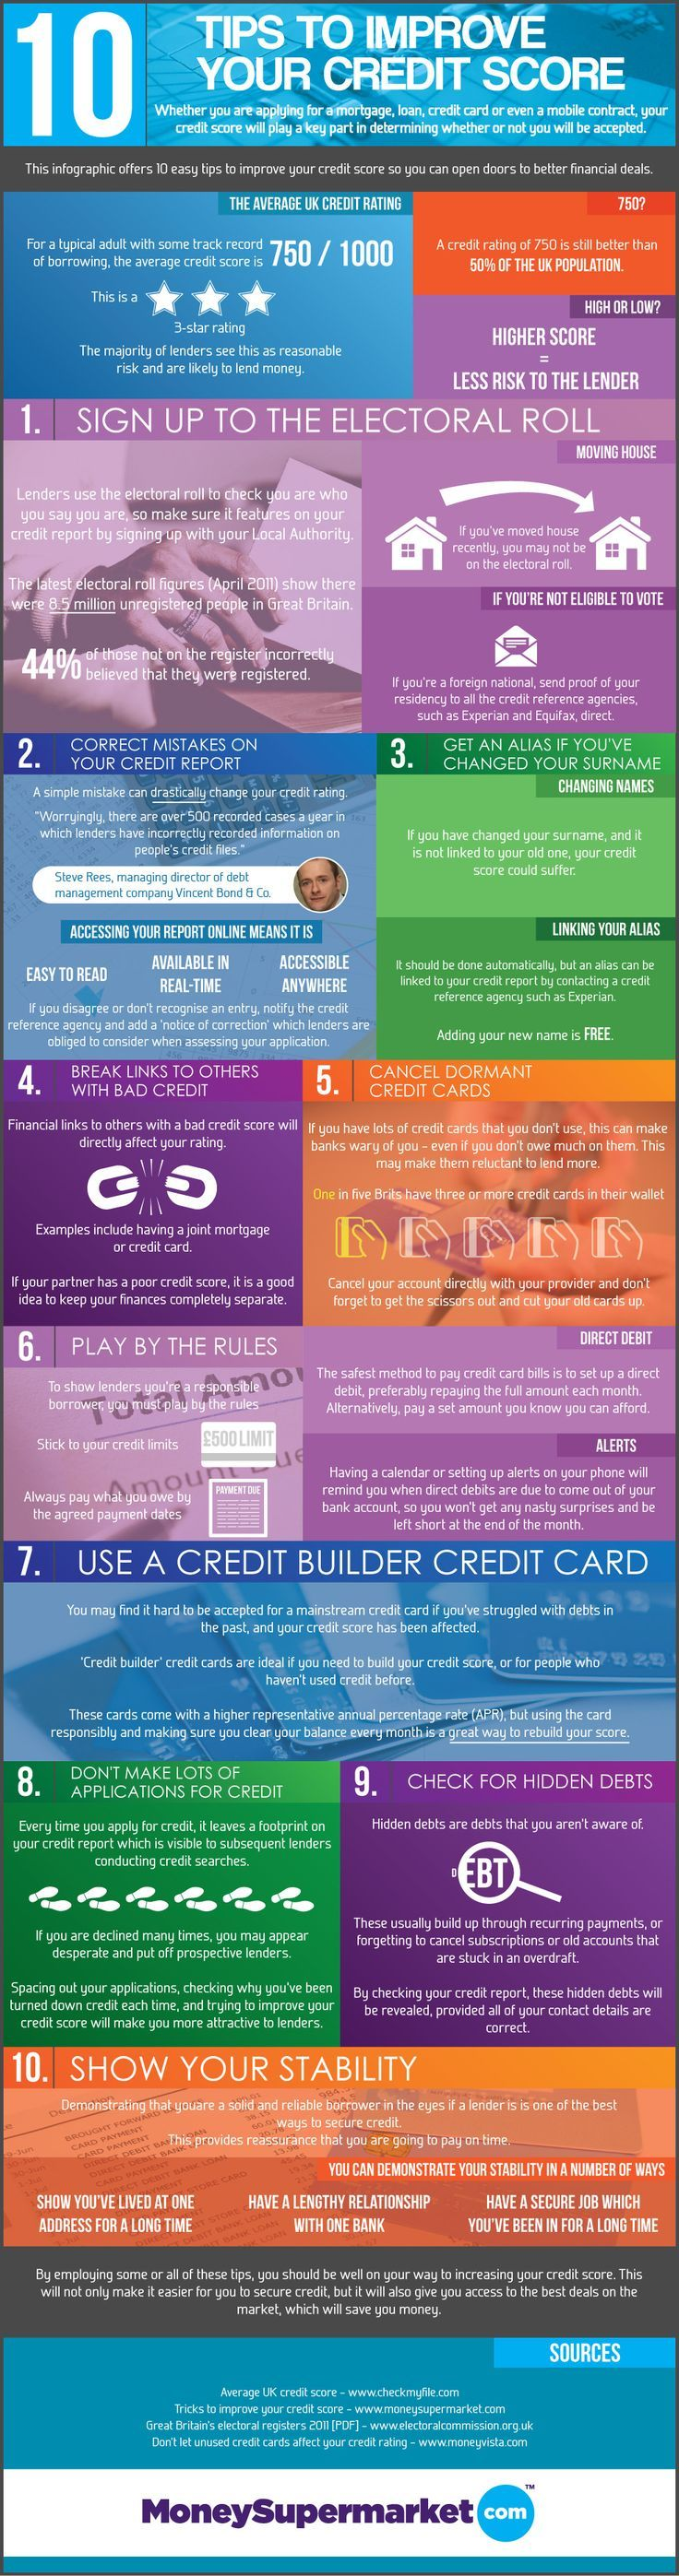 Is commercial debt on a credit report - 10 Tips To Improve Your Credit Score Credit Credit Scores Credit Repair Credit Business